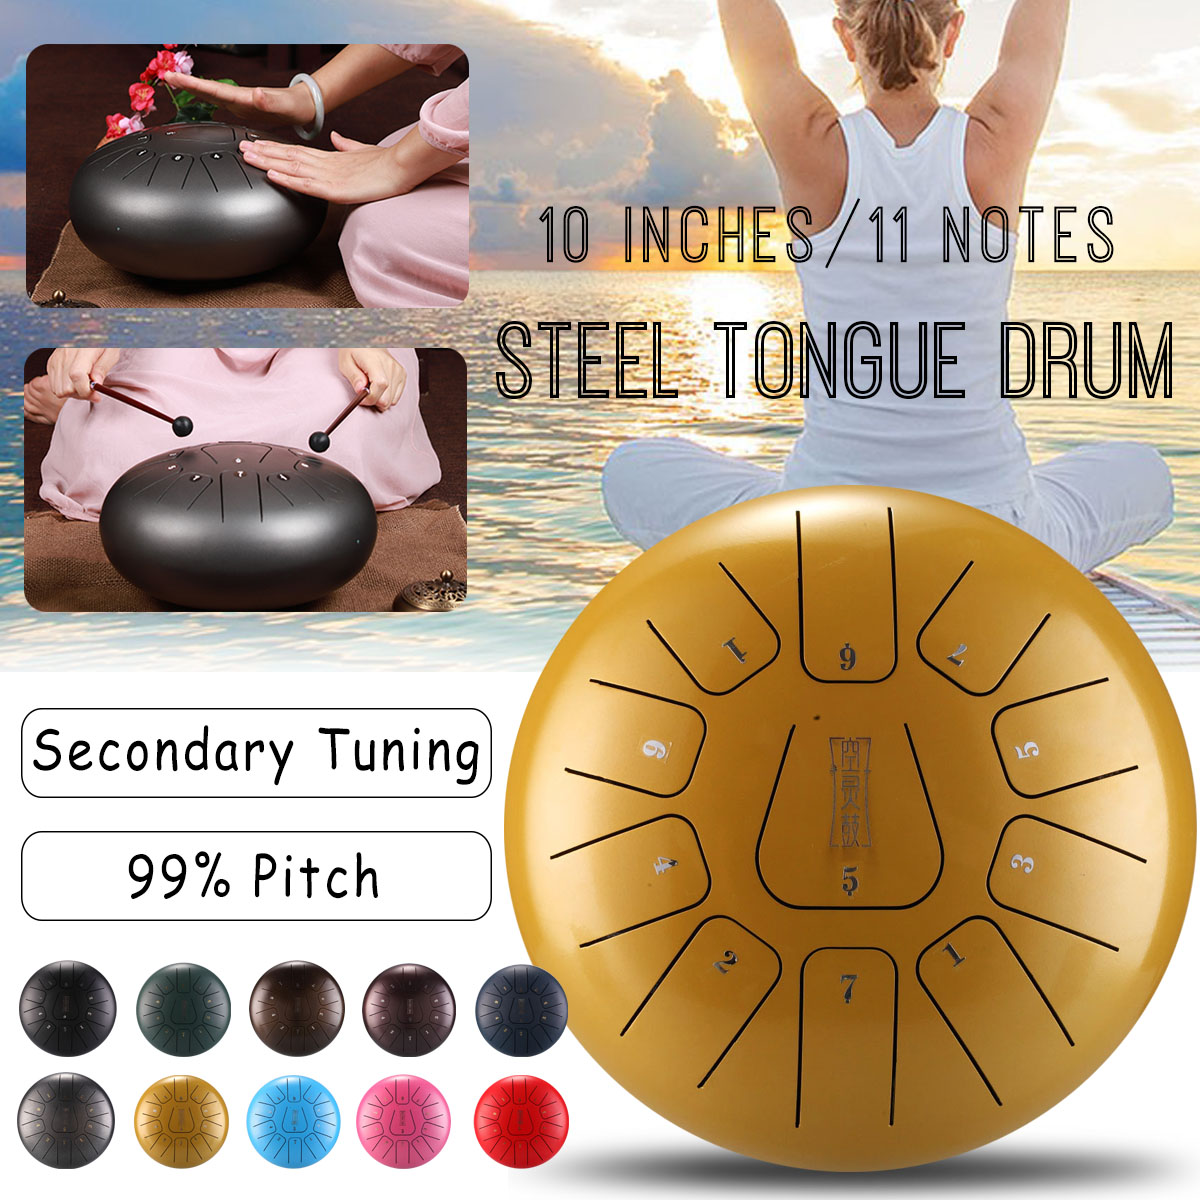 SENRHY Steel Tongue Drum 11 Notes Pentatonic Scale Hank Drum for Adult Percussion Instruments with Many Accessories 10 inch 3000gb seagate st3000dm001 64mb 7200rpm sata3 desktop hdd 7200 14 page 5